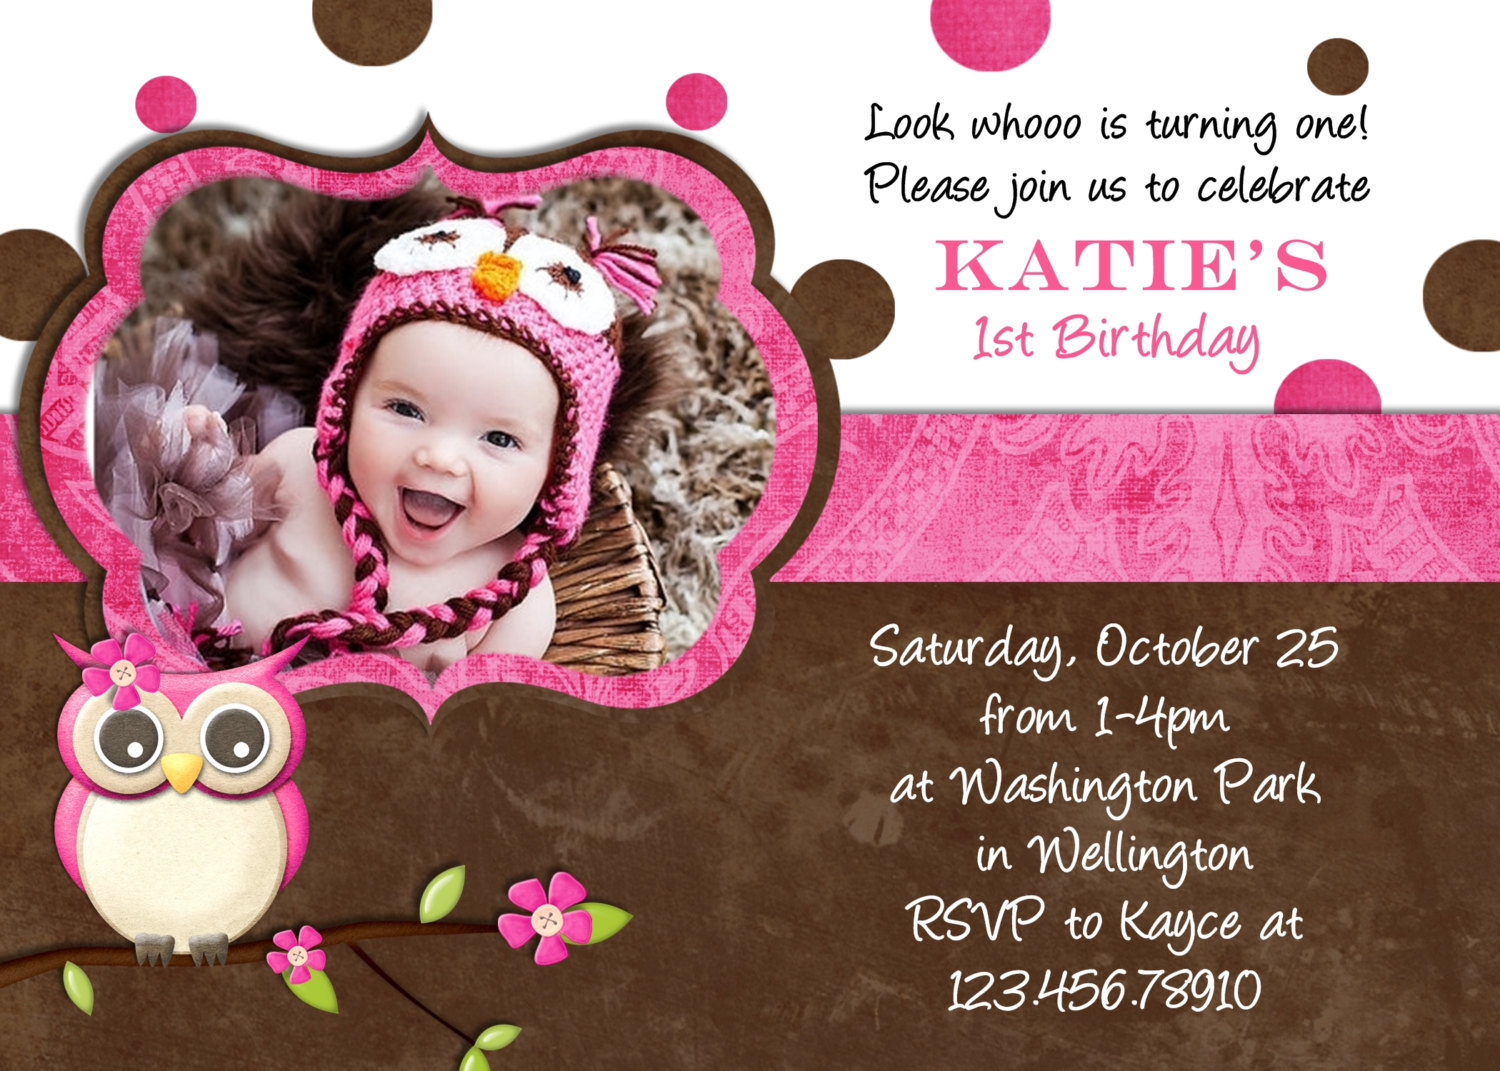 latest birthday invitation card designs ; nice-ideas-birthday-invitation-cards-design-brown-color-white-background-real-photo-owl-pink-beautiful